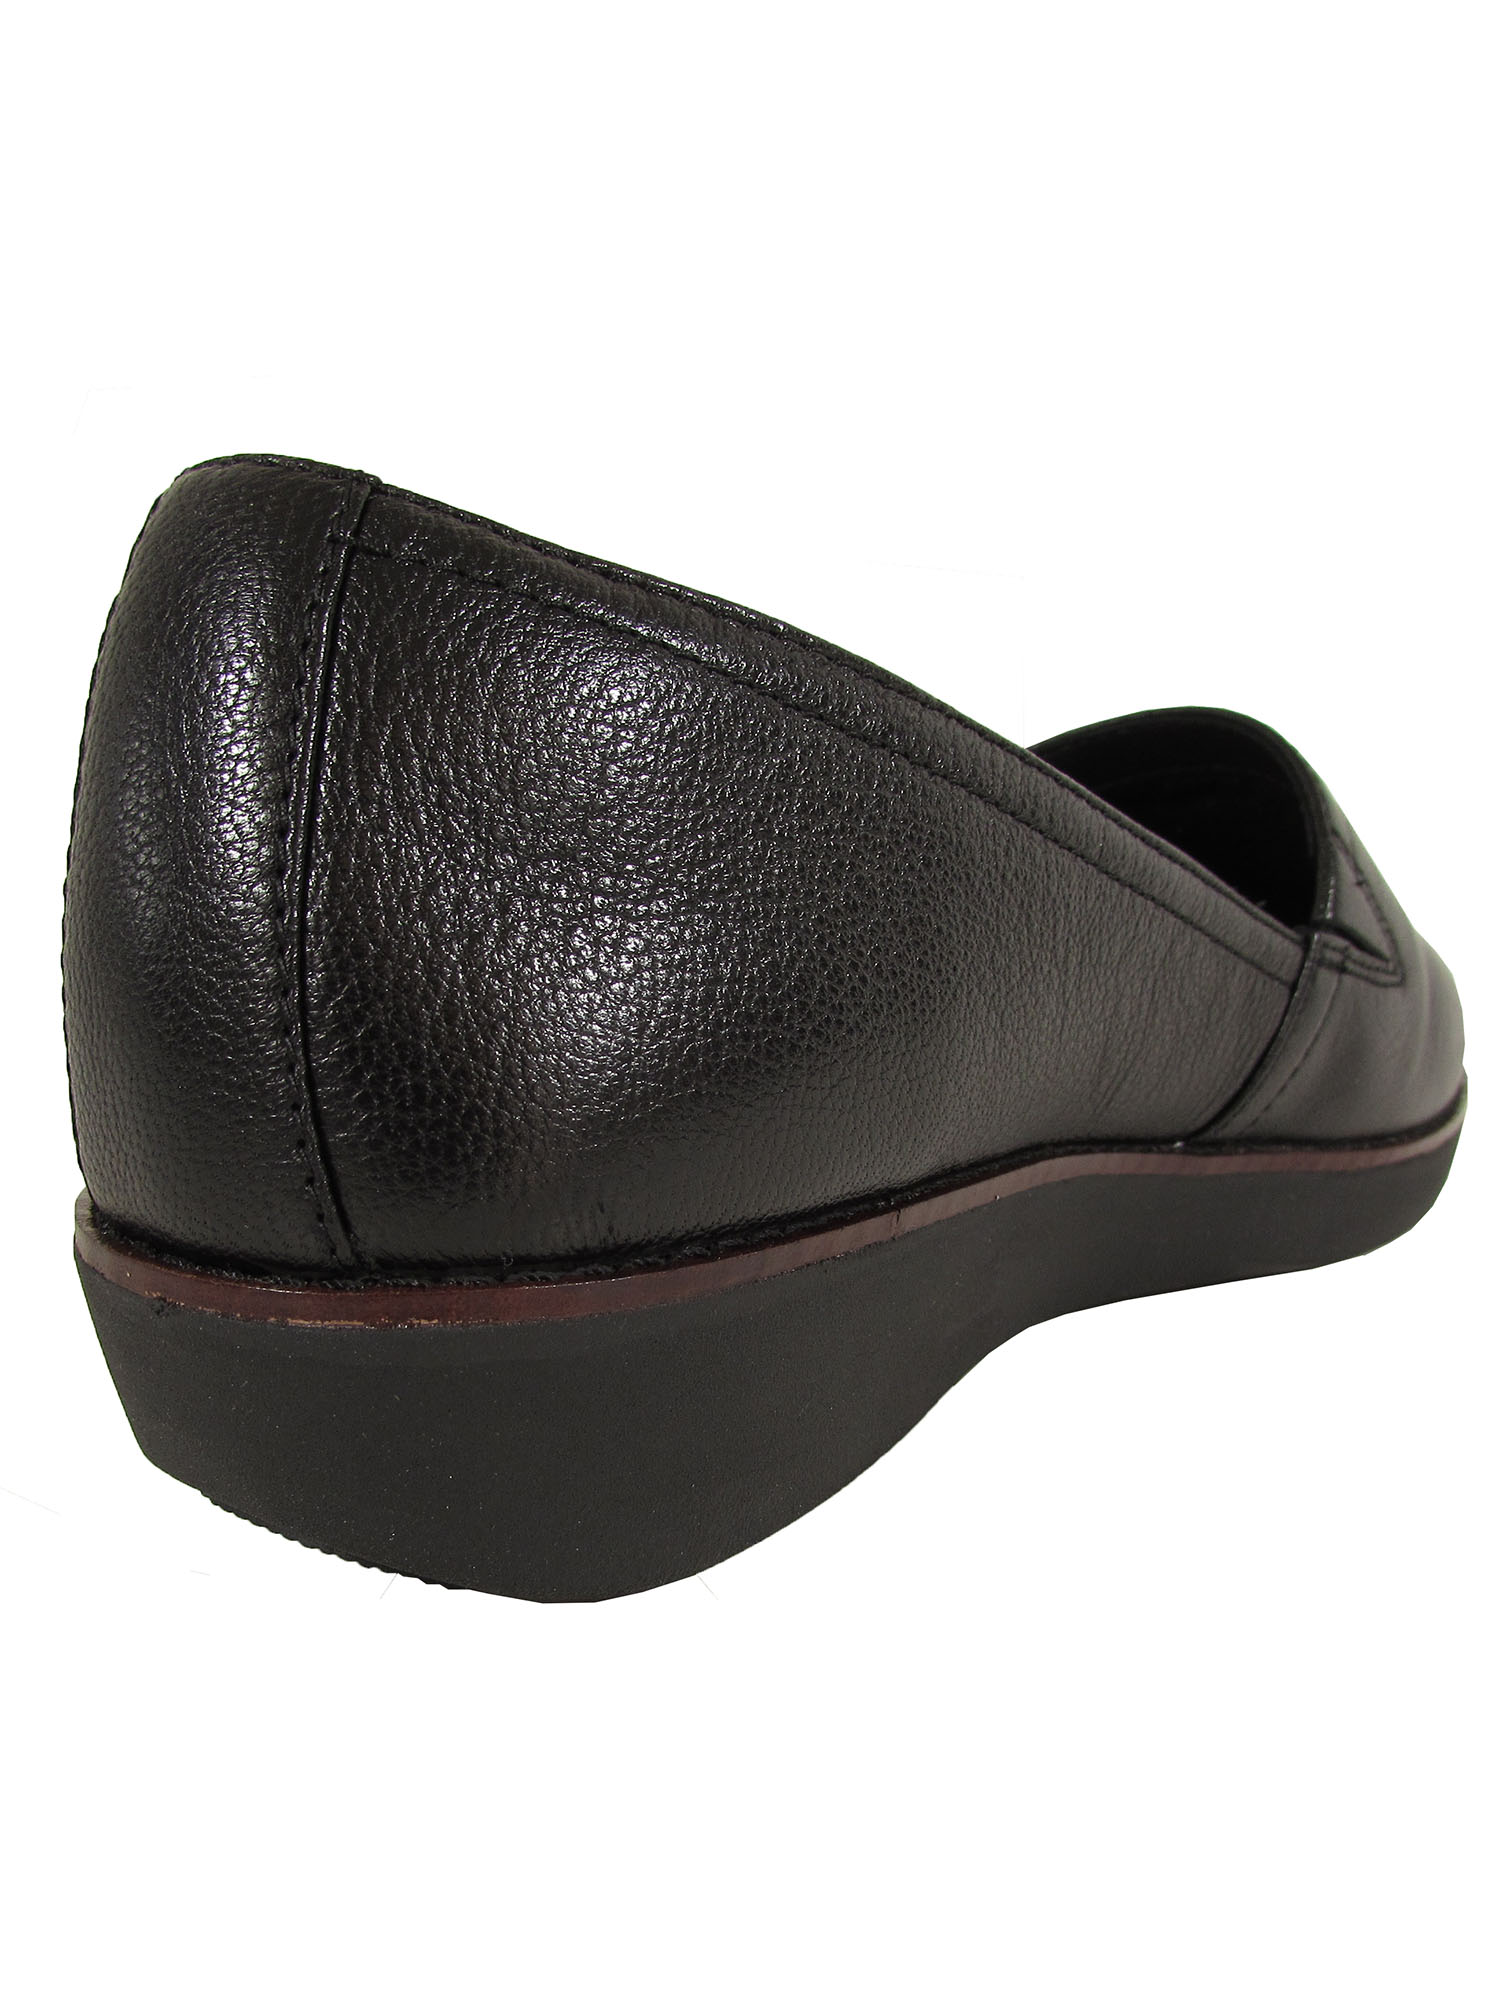 Fitflop-Womens-Casa-Slip-On-Loafer-Shoes thumbnail 4